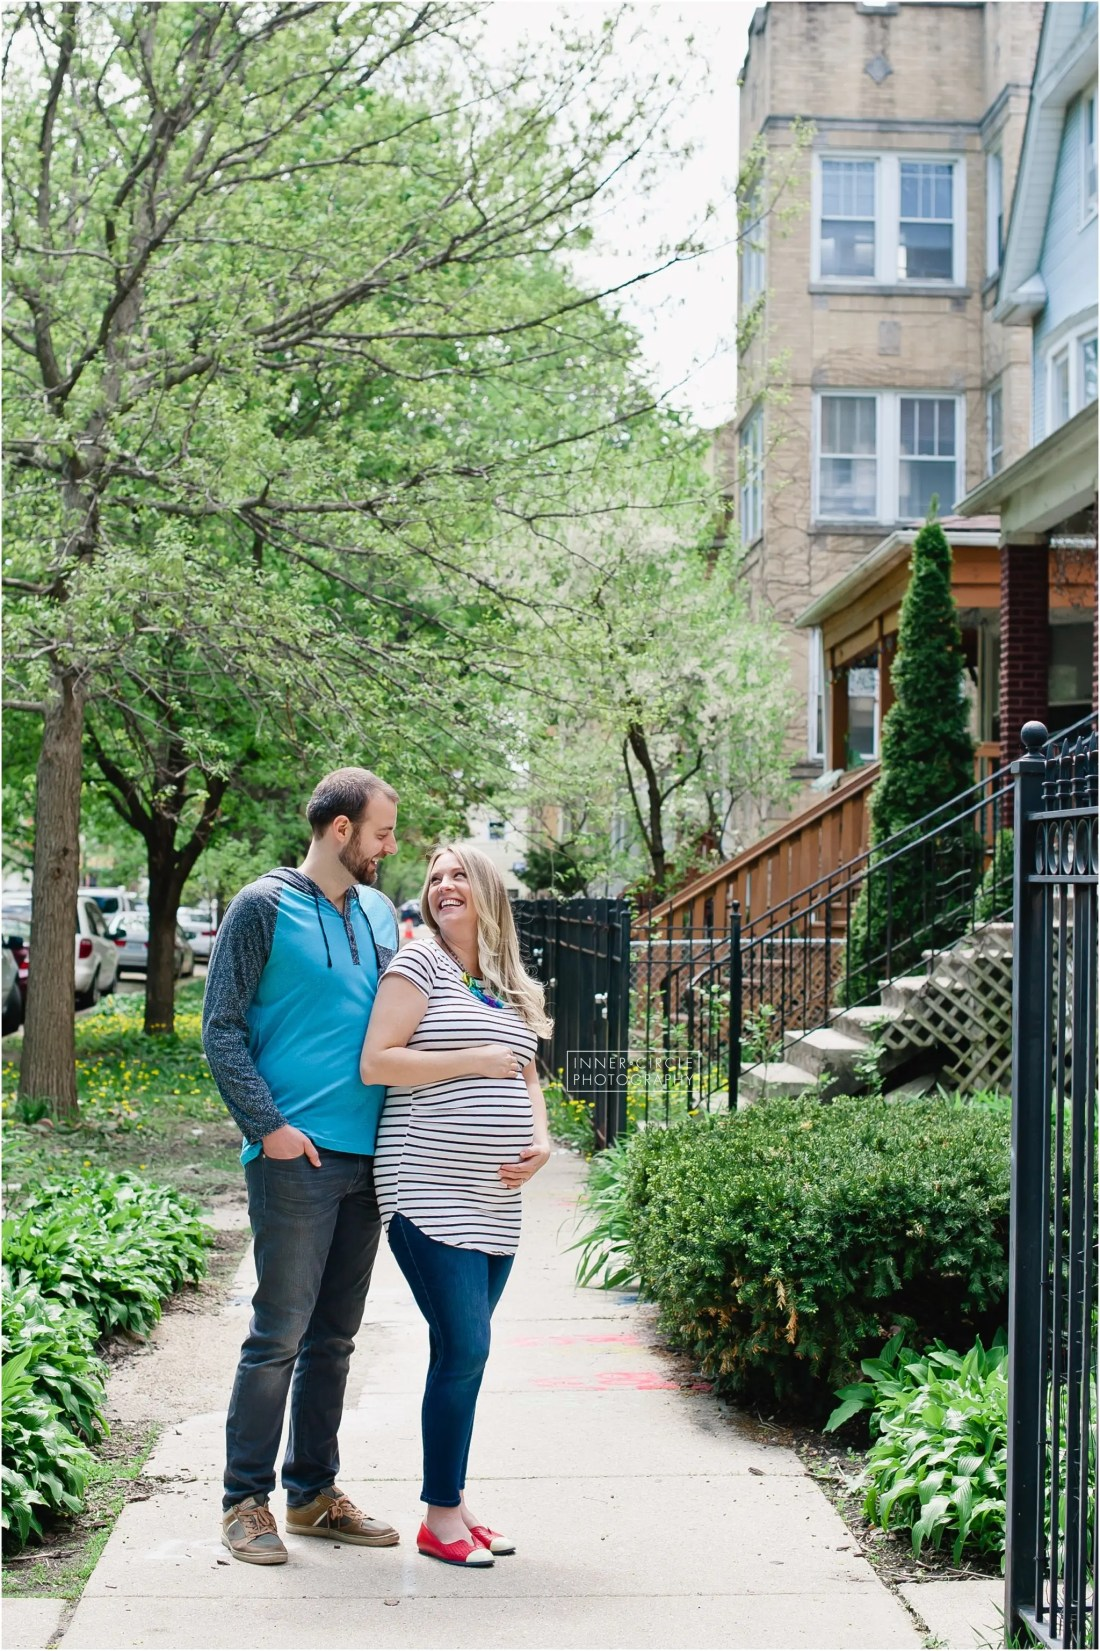 StephanieMATERNITY_2018_InnerCirclePhoto_008-1 Stephanie + Matt + Bump :: Chicago Maternity Photographer